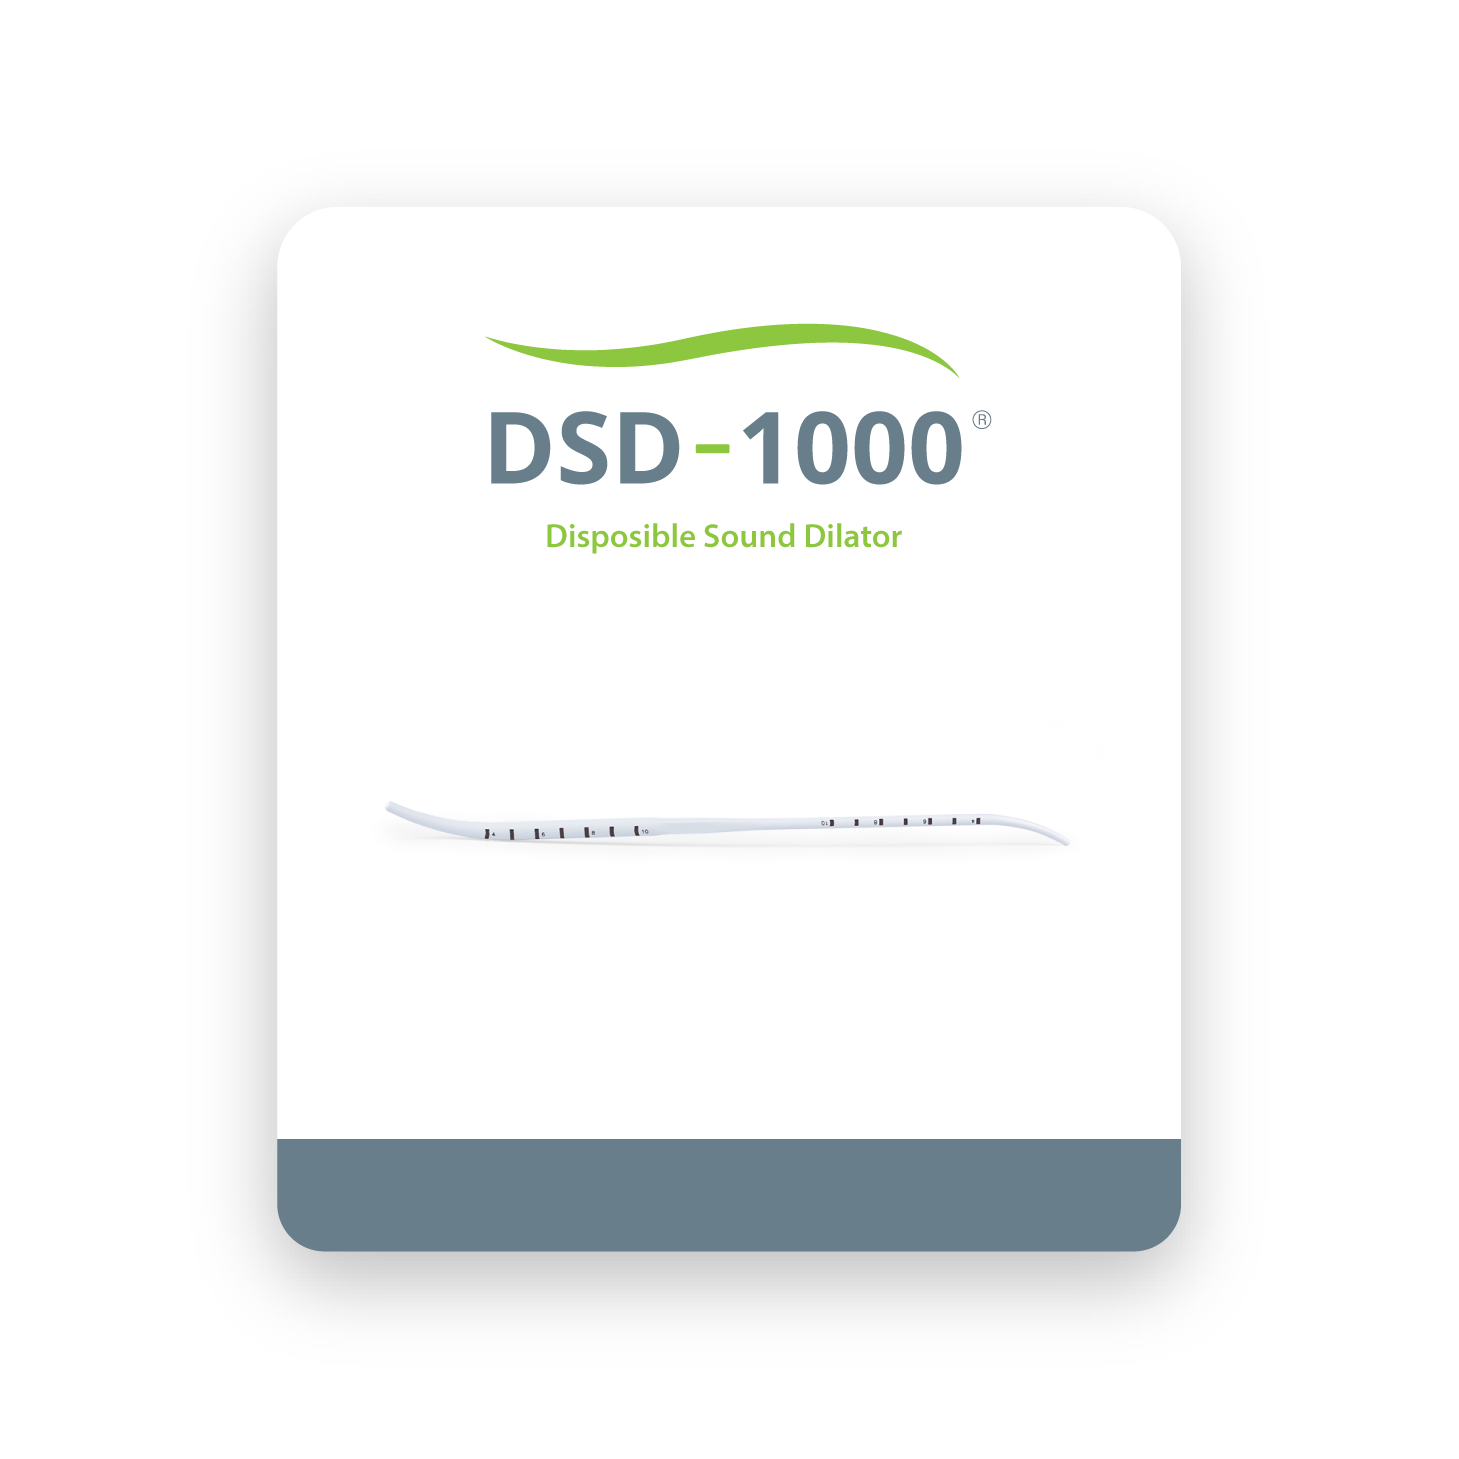 DSD-1000 Sound Dilator